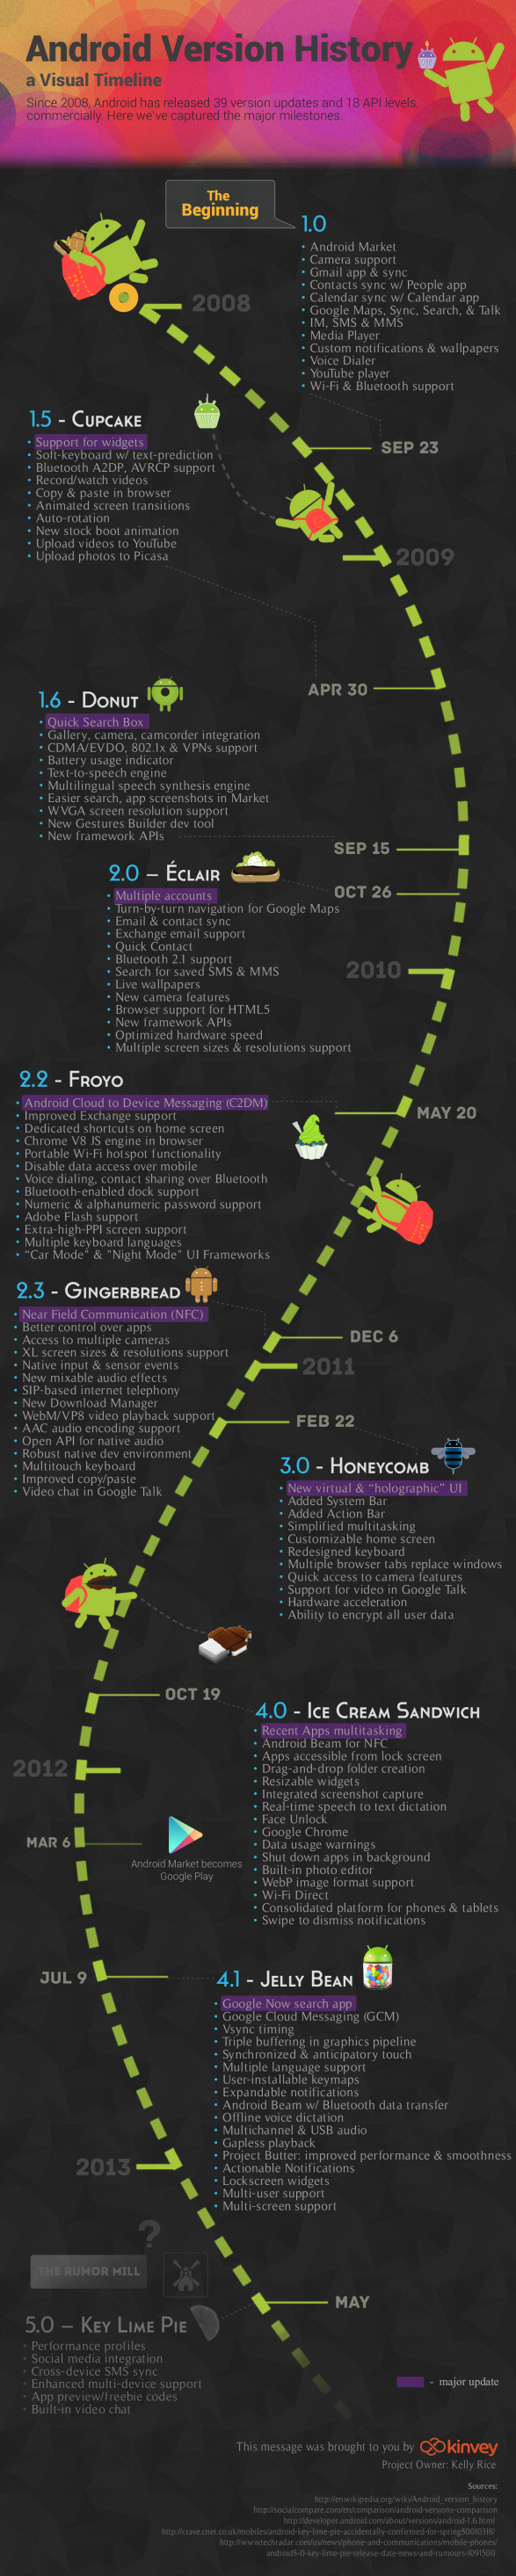 Android Version History: A Visual Timeline